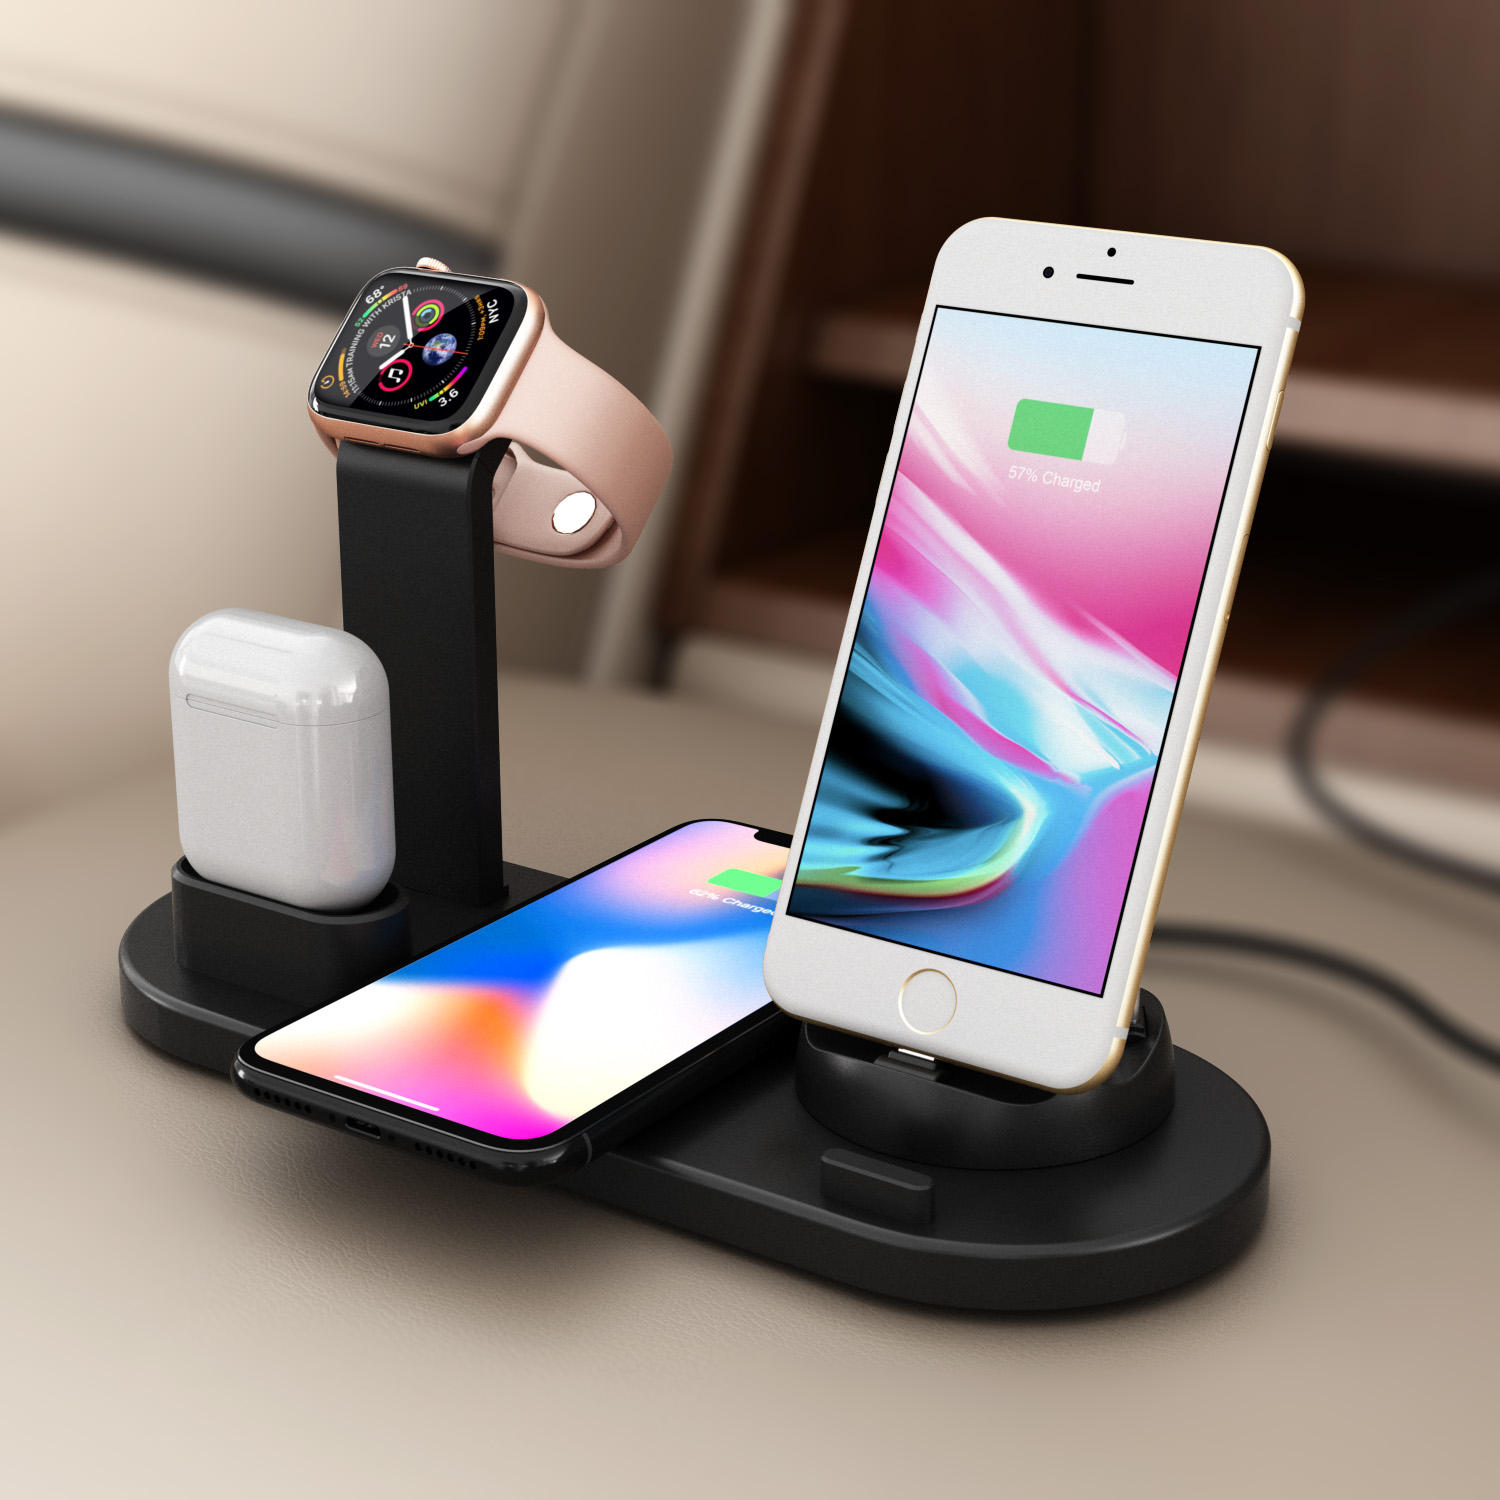 High quality mobile phone charging station 4 in 1 wireless charger multifunctional cool wireless charger